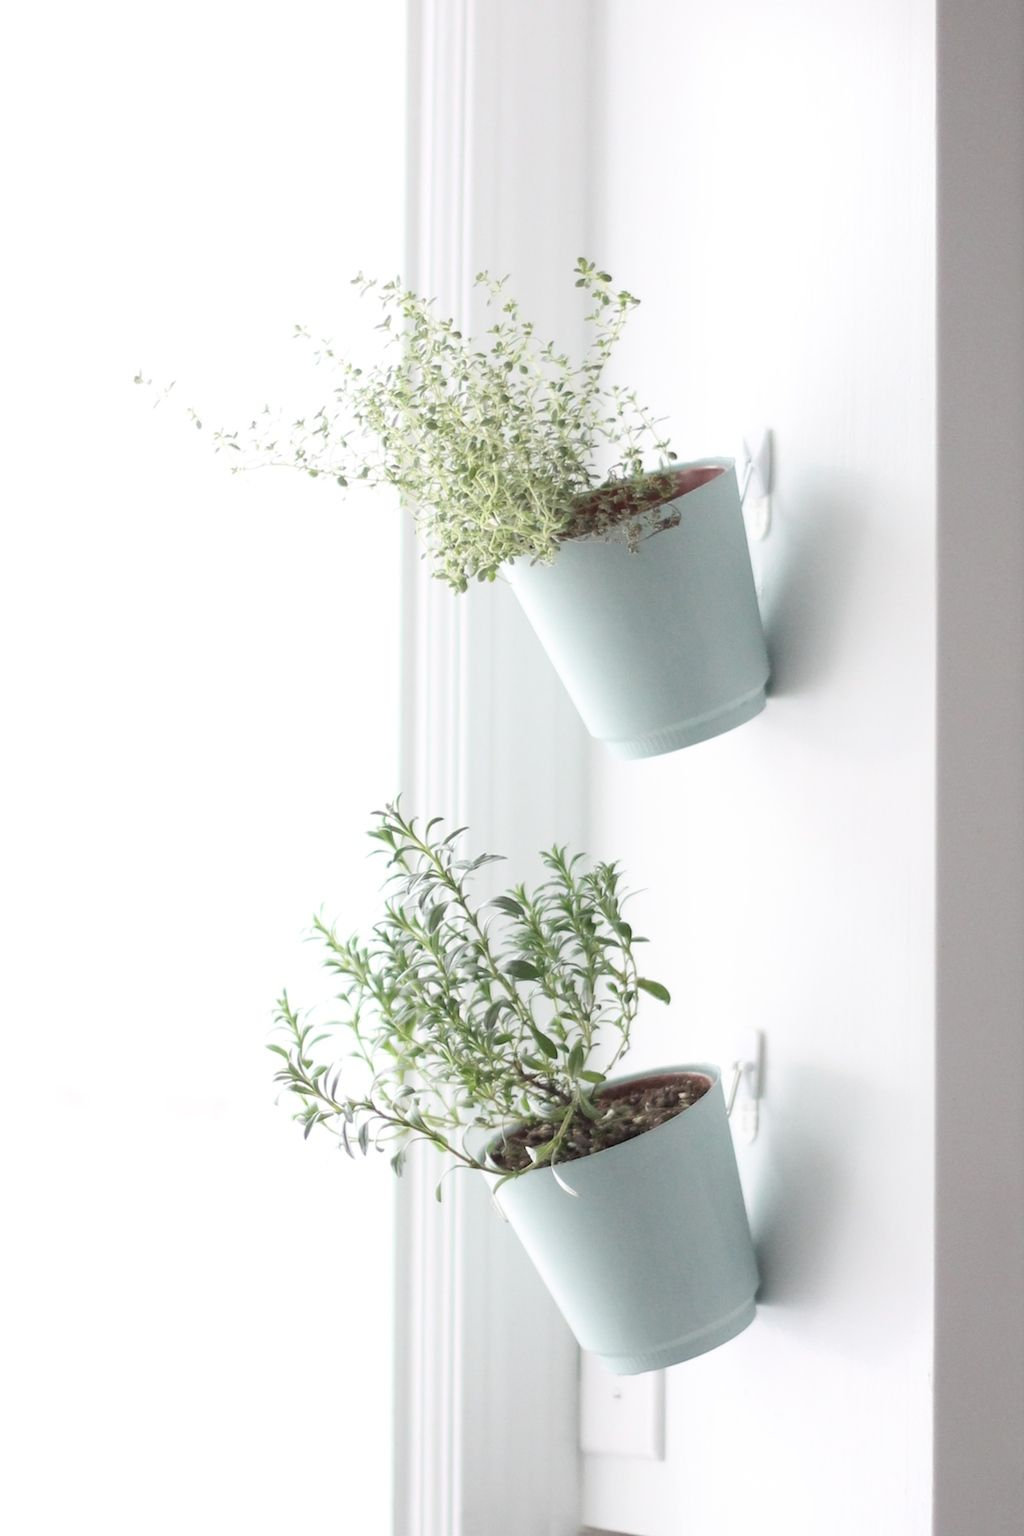 Hanging Wall Planter hanging herb planters indoor herb garden | kitchen window sill